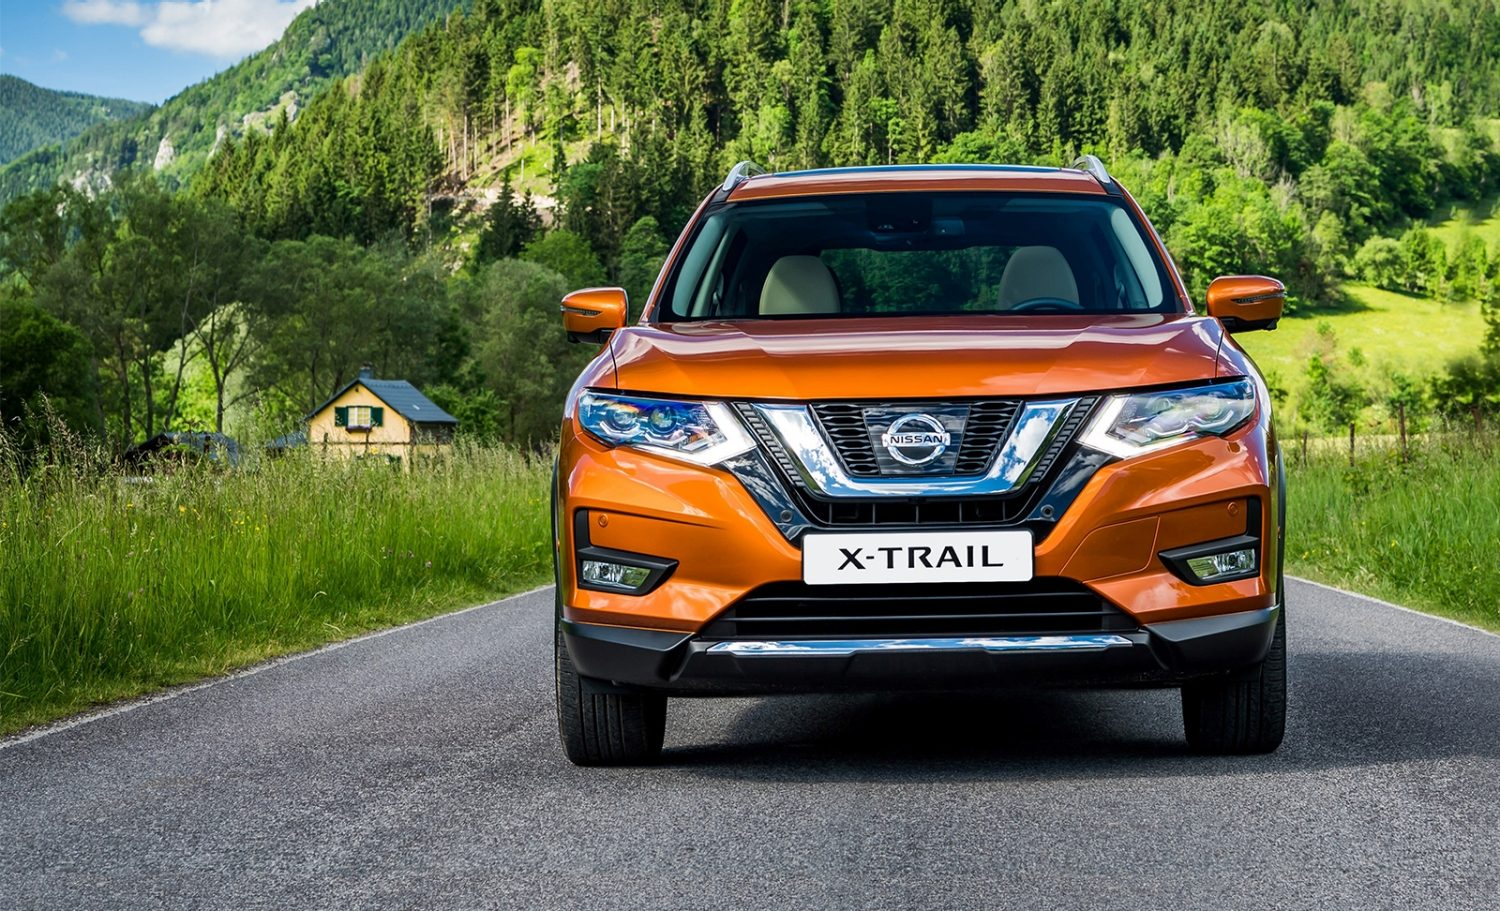 Nissan X-Trail design exterior frontal